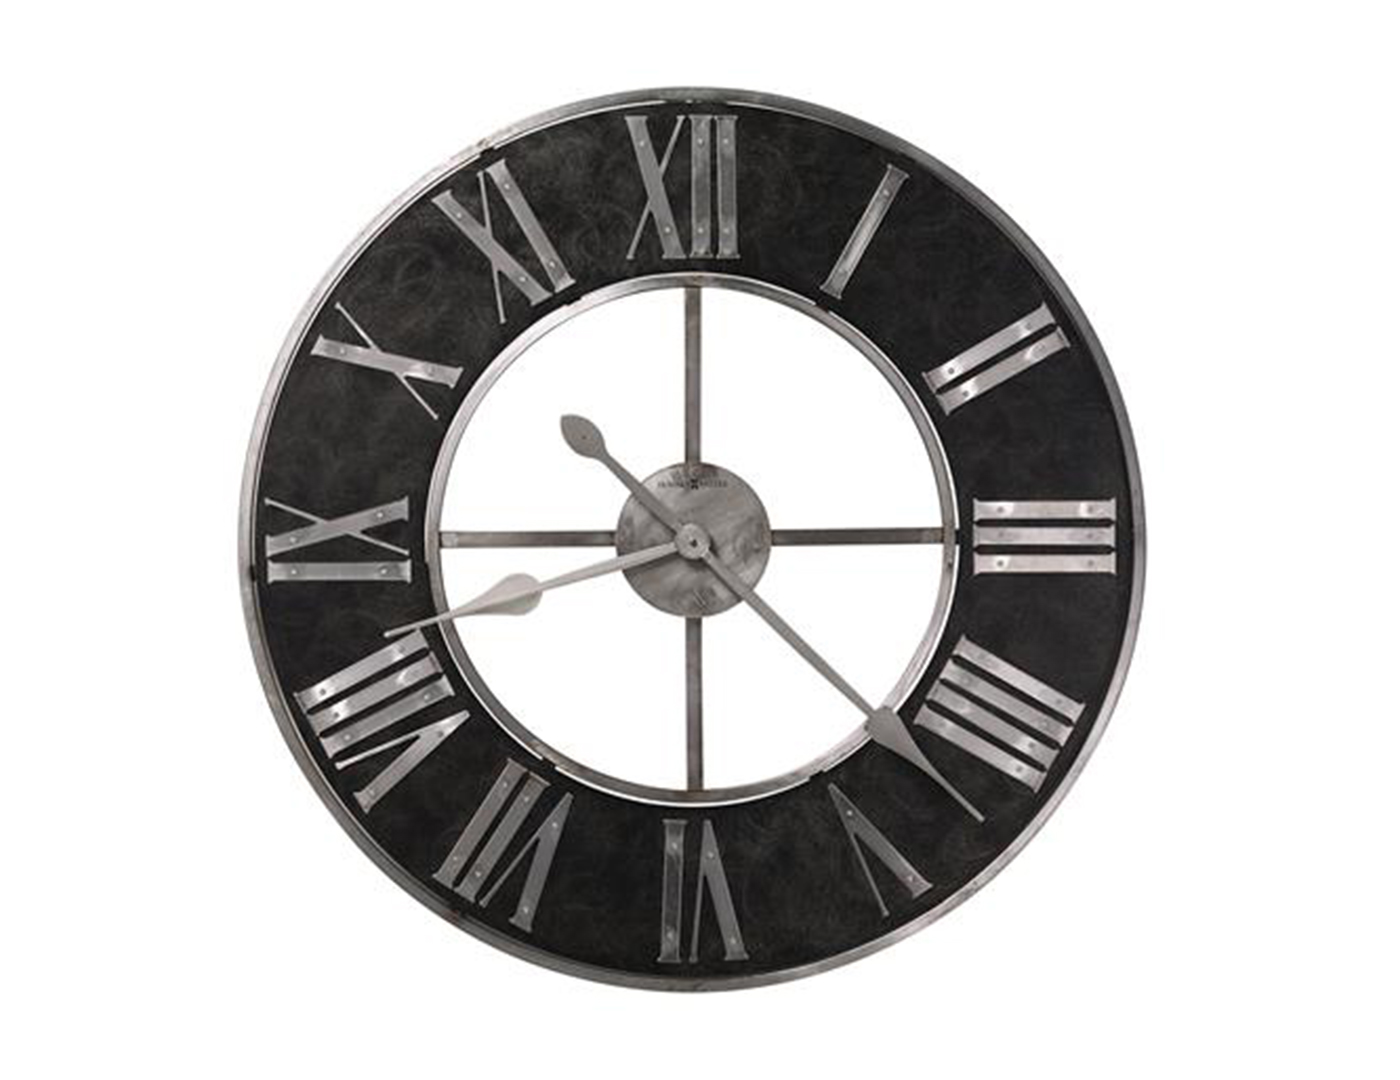 Steinhafels galvanized steel wall clock dearborn wall clock amipublicfo Images